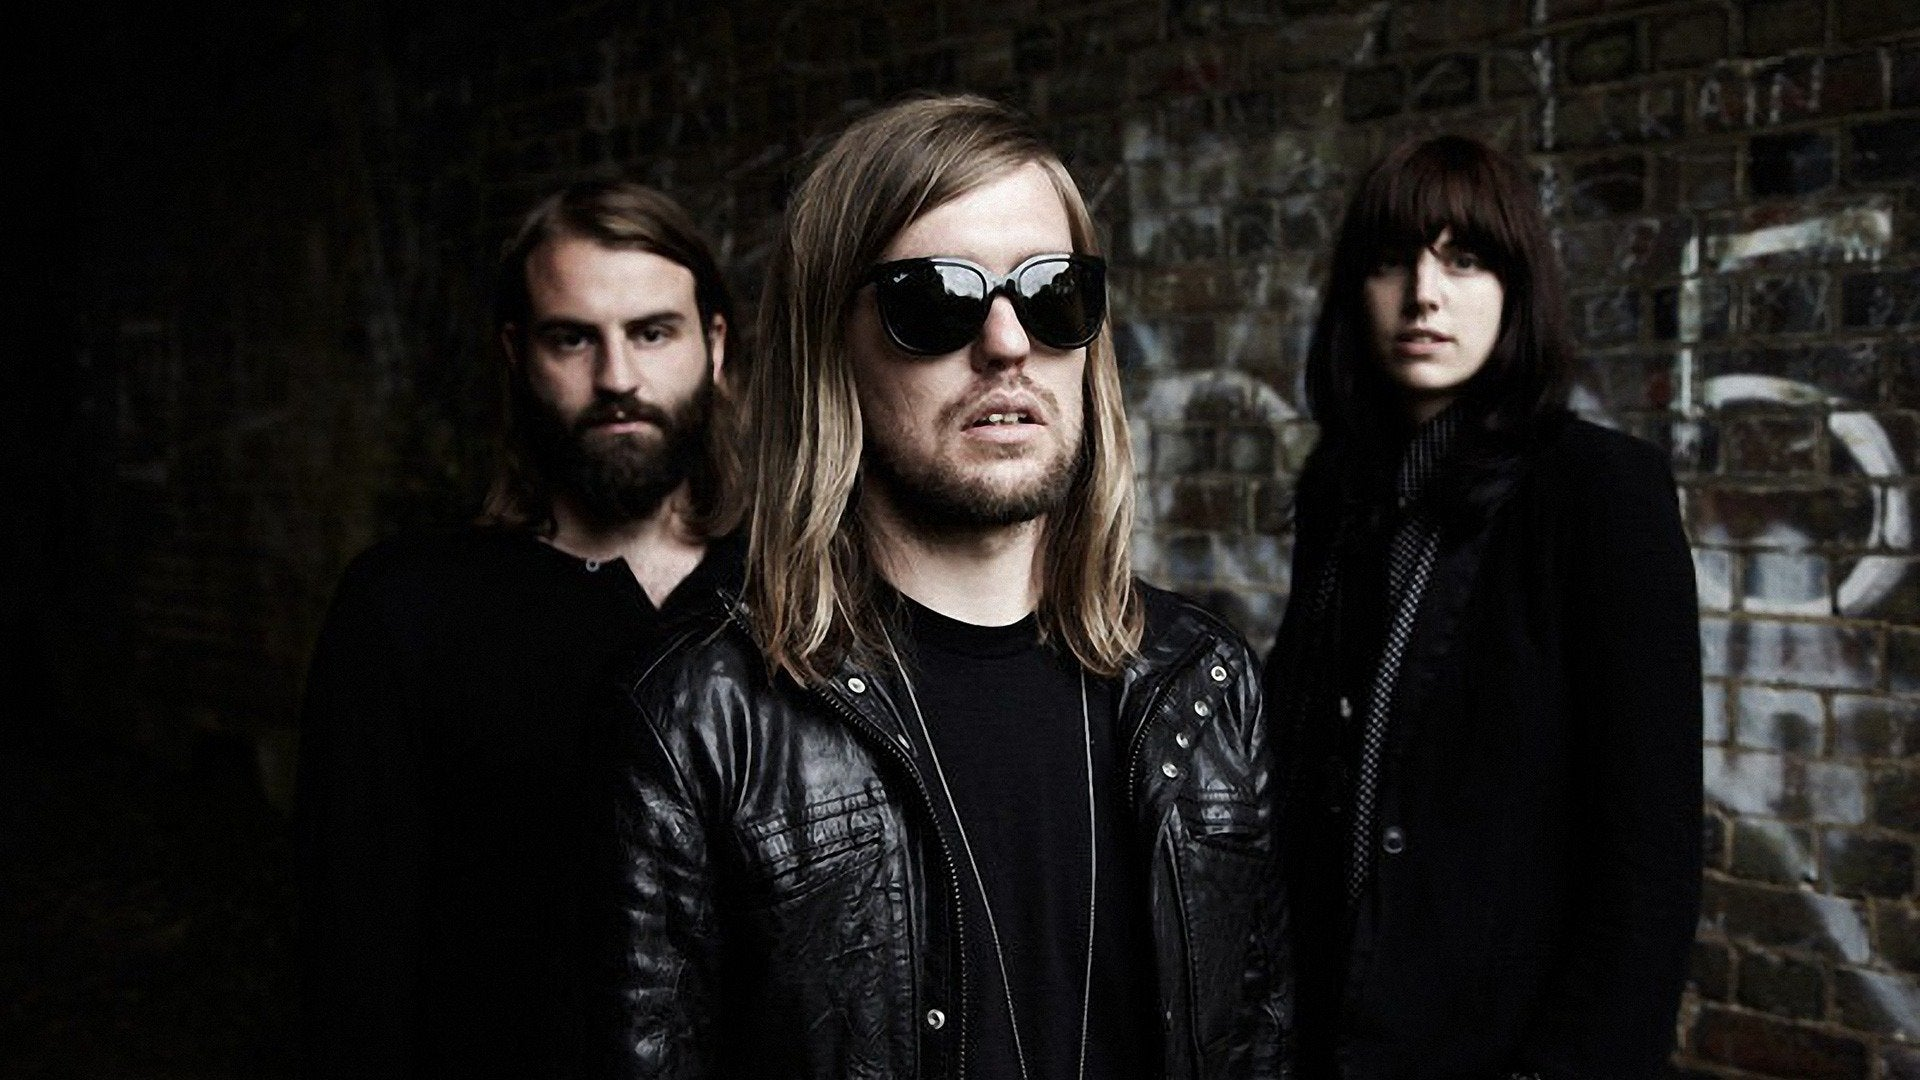 Band of Skulls: Live From Sonisphere 2014